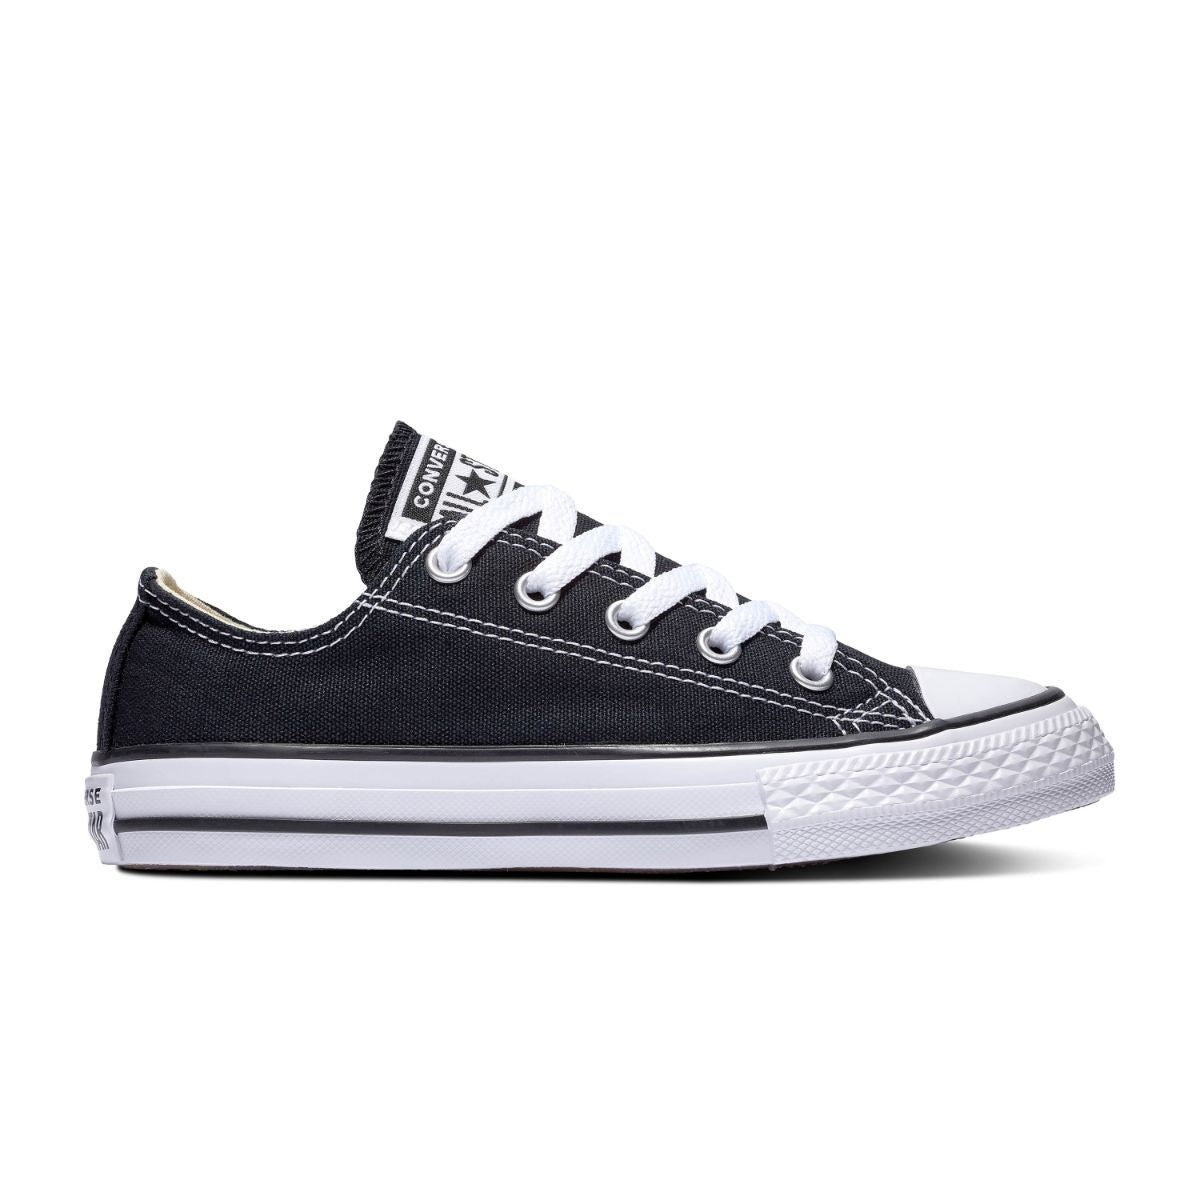 Chuck Taylor All Star Black Low Top